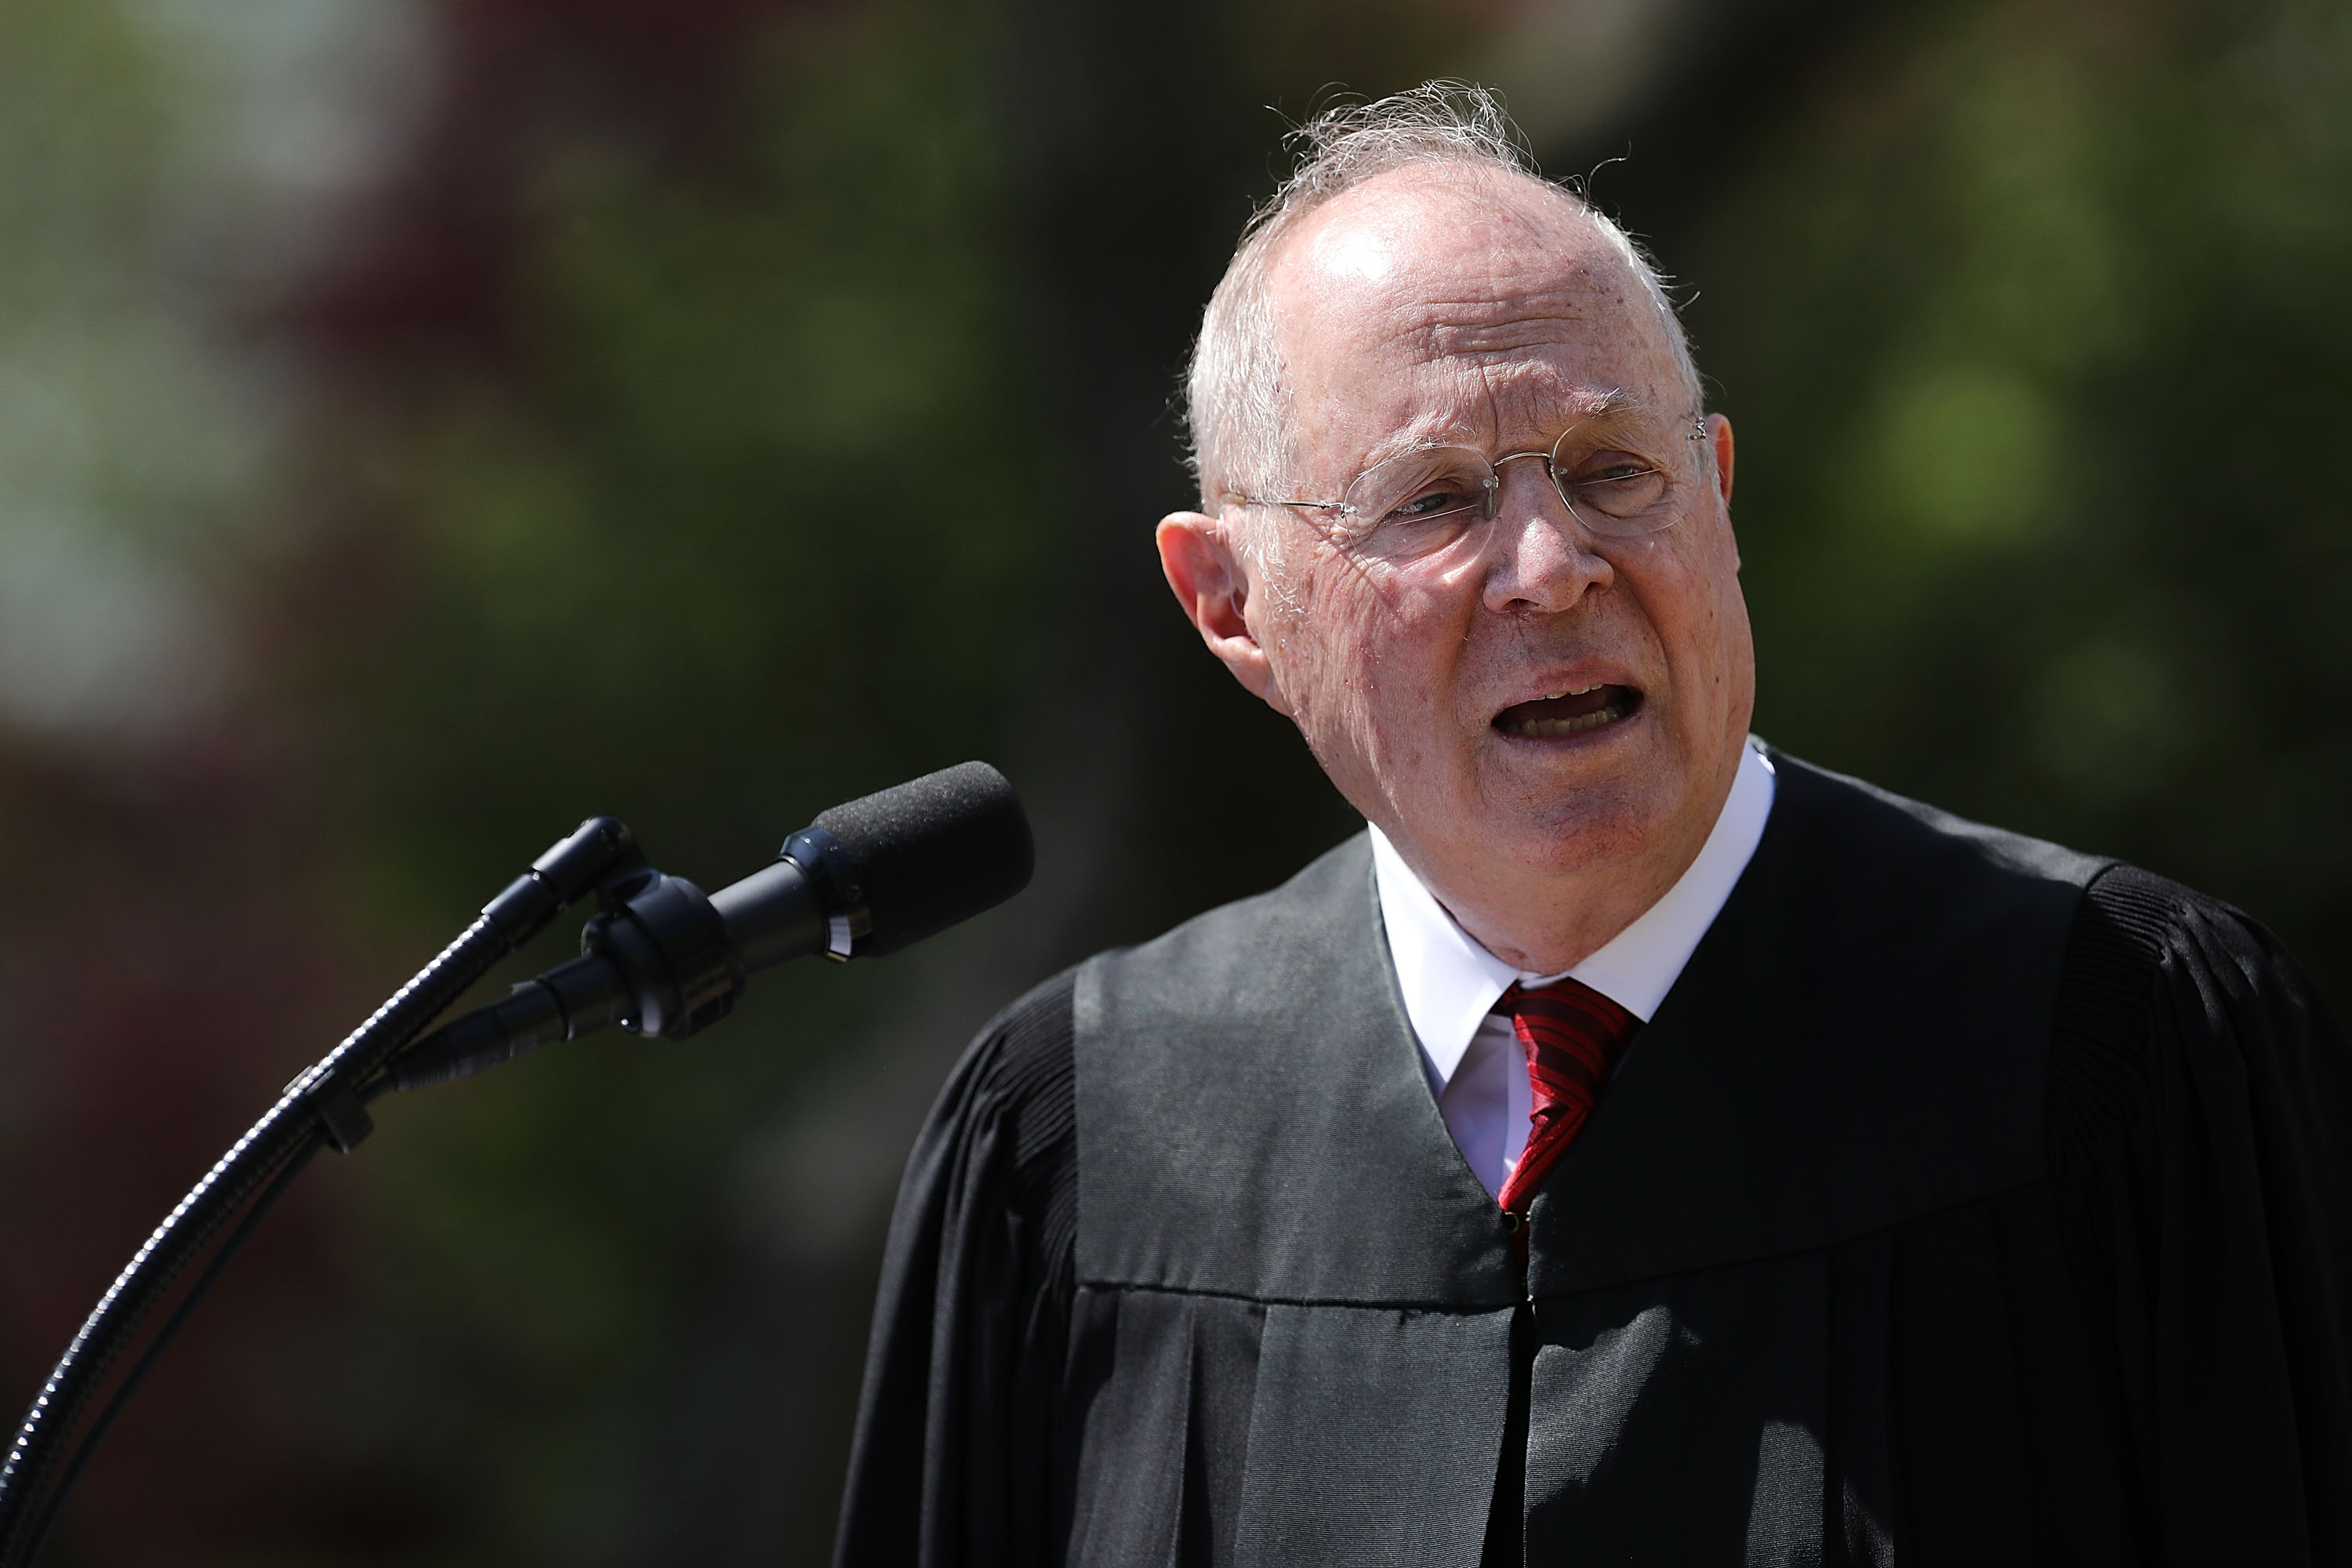 Supreme Court Associate Justice Anthony Kennedy delivers remarks before administering the judicial oath to Judge Neil Gorsuch during a ceremony in the Rose Garden at the White House on April 10, 2017.